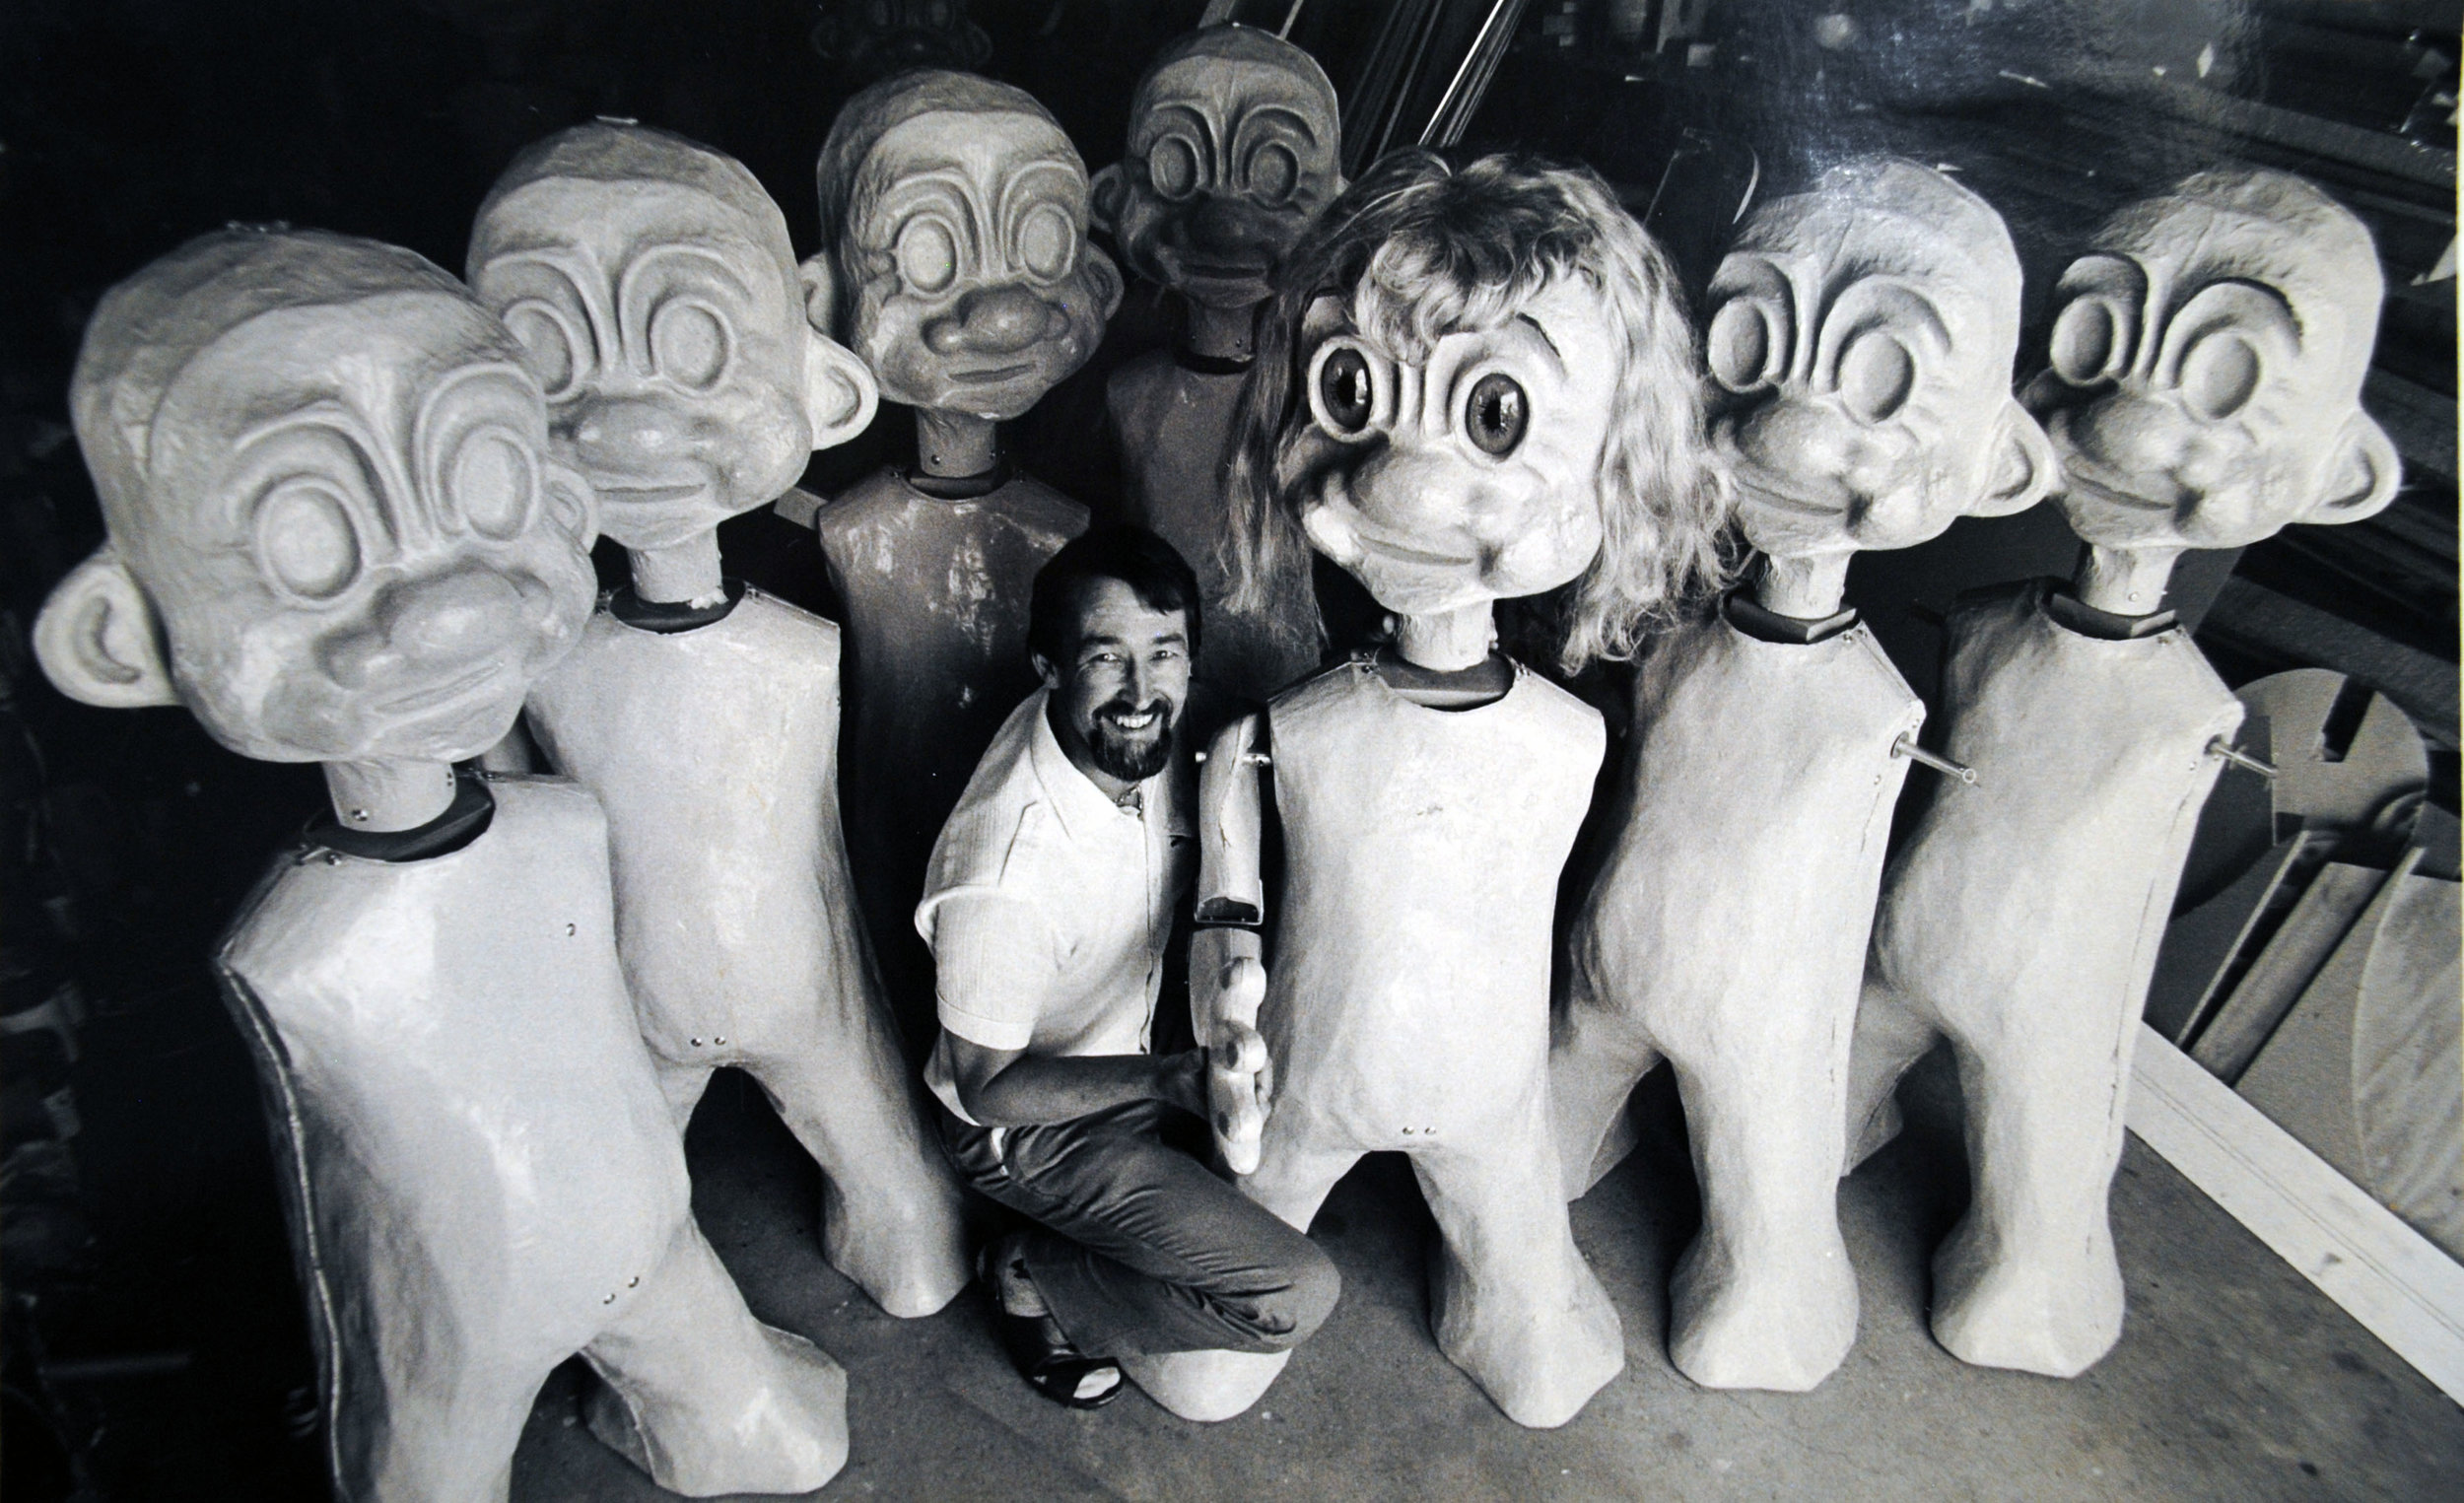 Worker creates the characters for the log flume. Image credit: Rainbowsend. Date unkown.